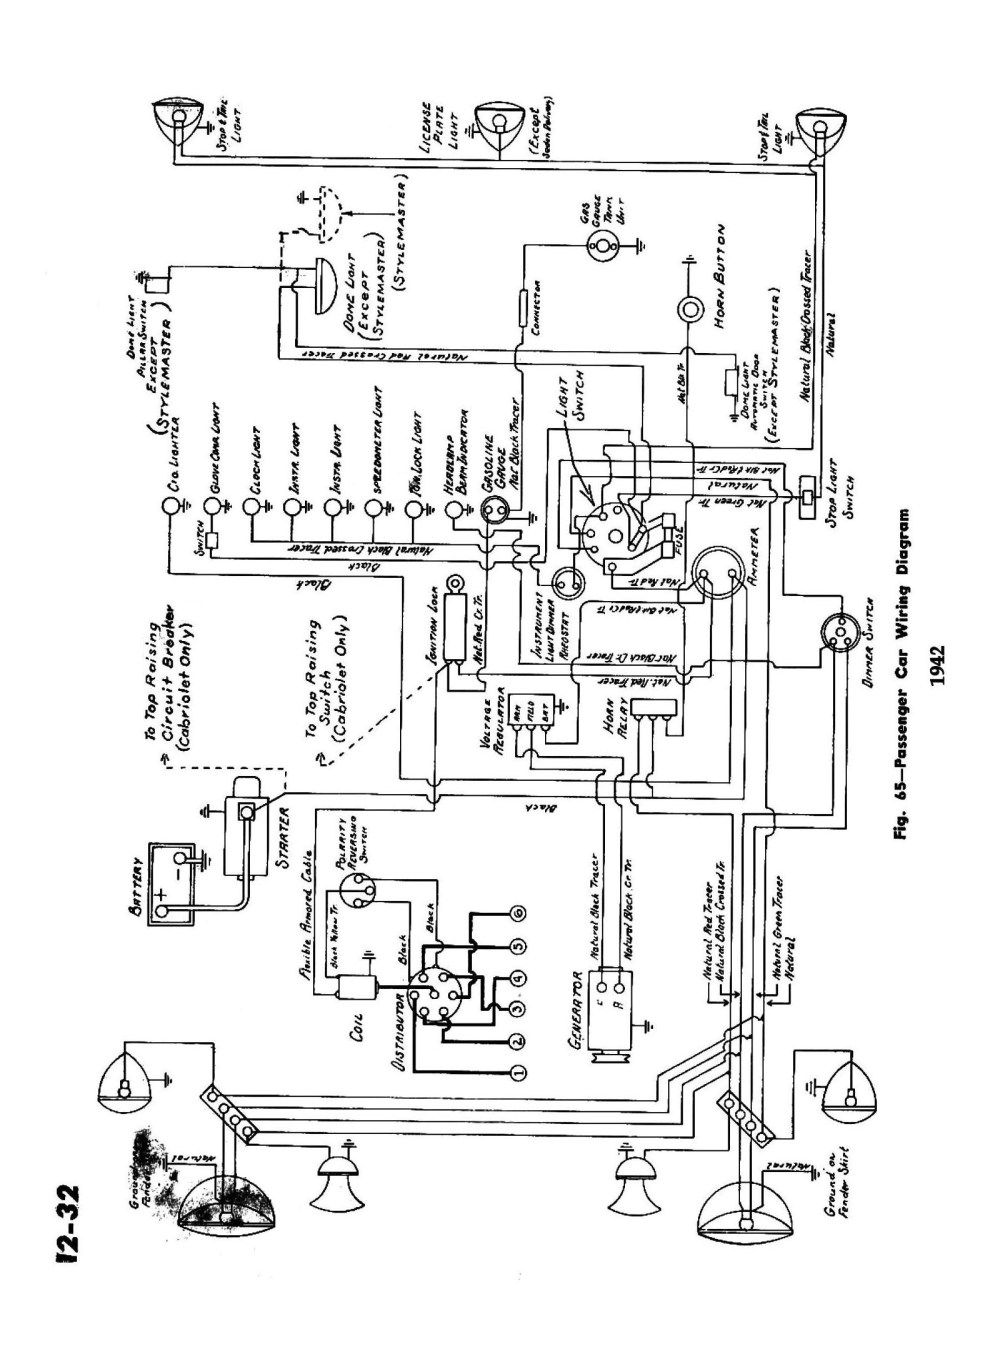 medium resolution of 1940 dodge wiring diagram wiring diagram portal rh 16 16 2 kaminari music de 2011 buick